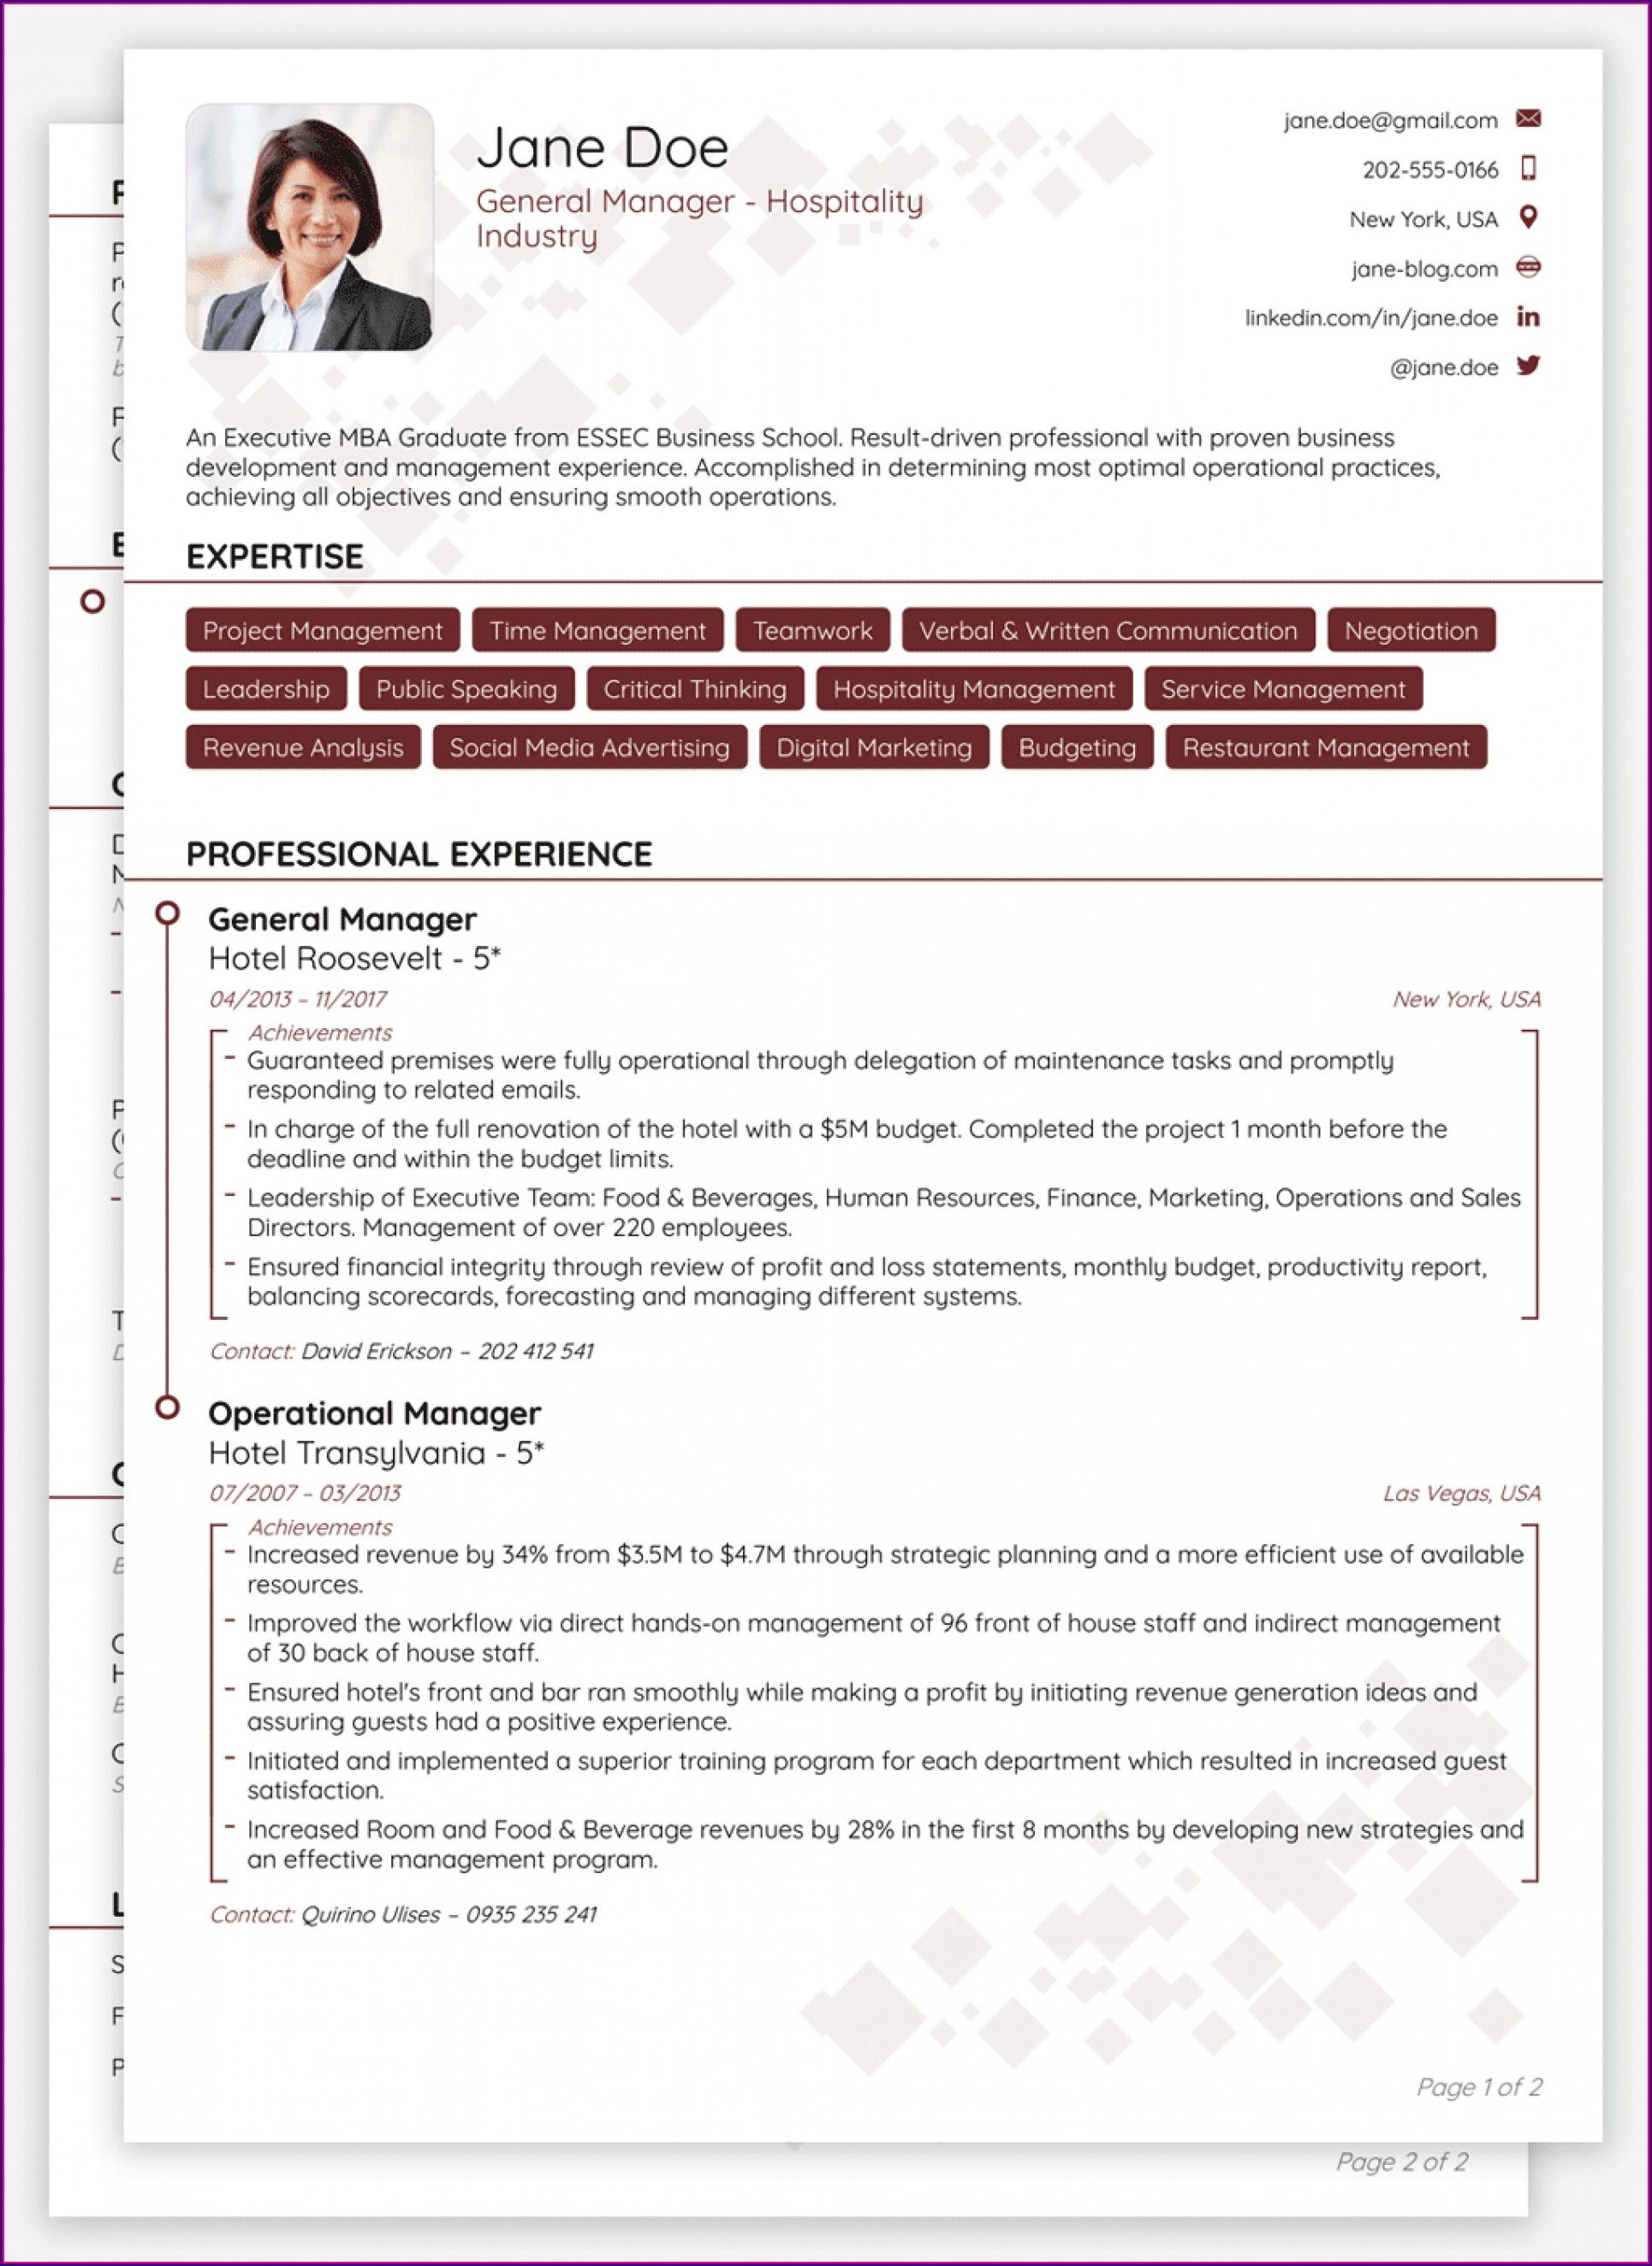 Curriculum Vitae Samples Free Download In Word